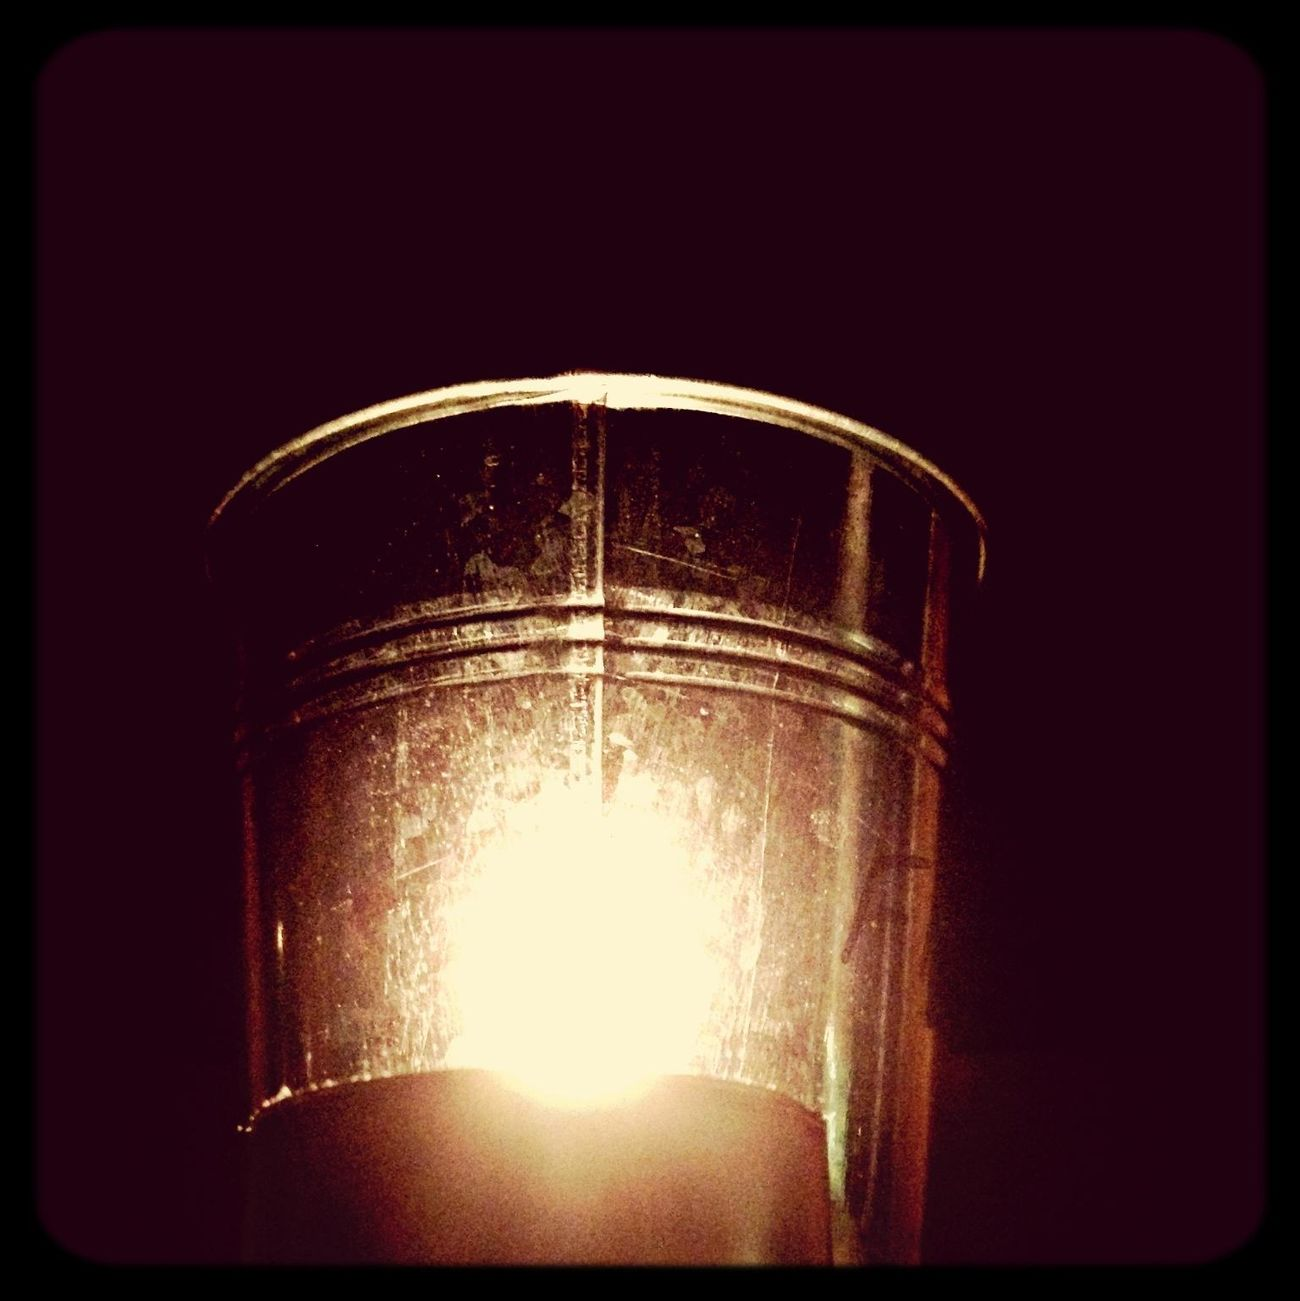 mirror, tea candle and a potted cactus. it's fun to play in the shadows at night